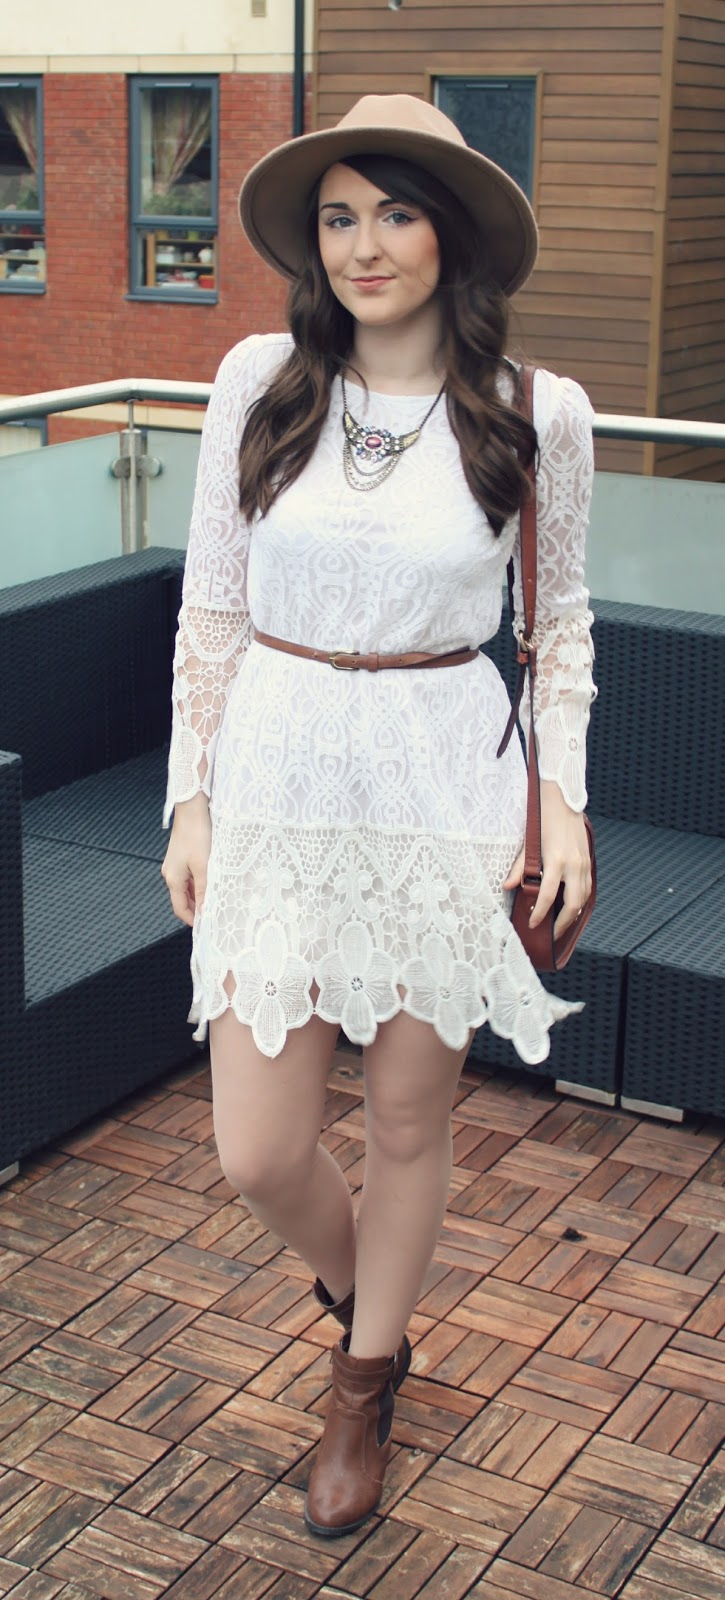 bohemian-style-white-lace-dress-and-brown-accessories